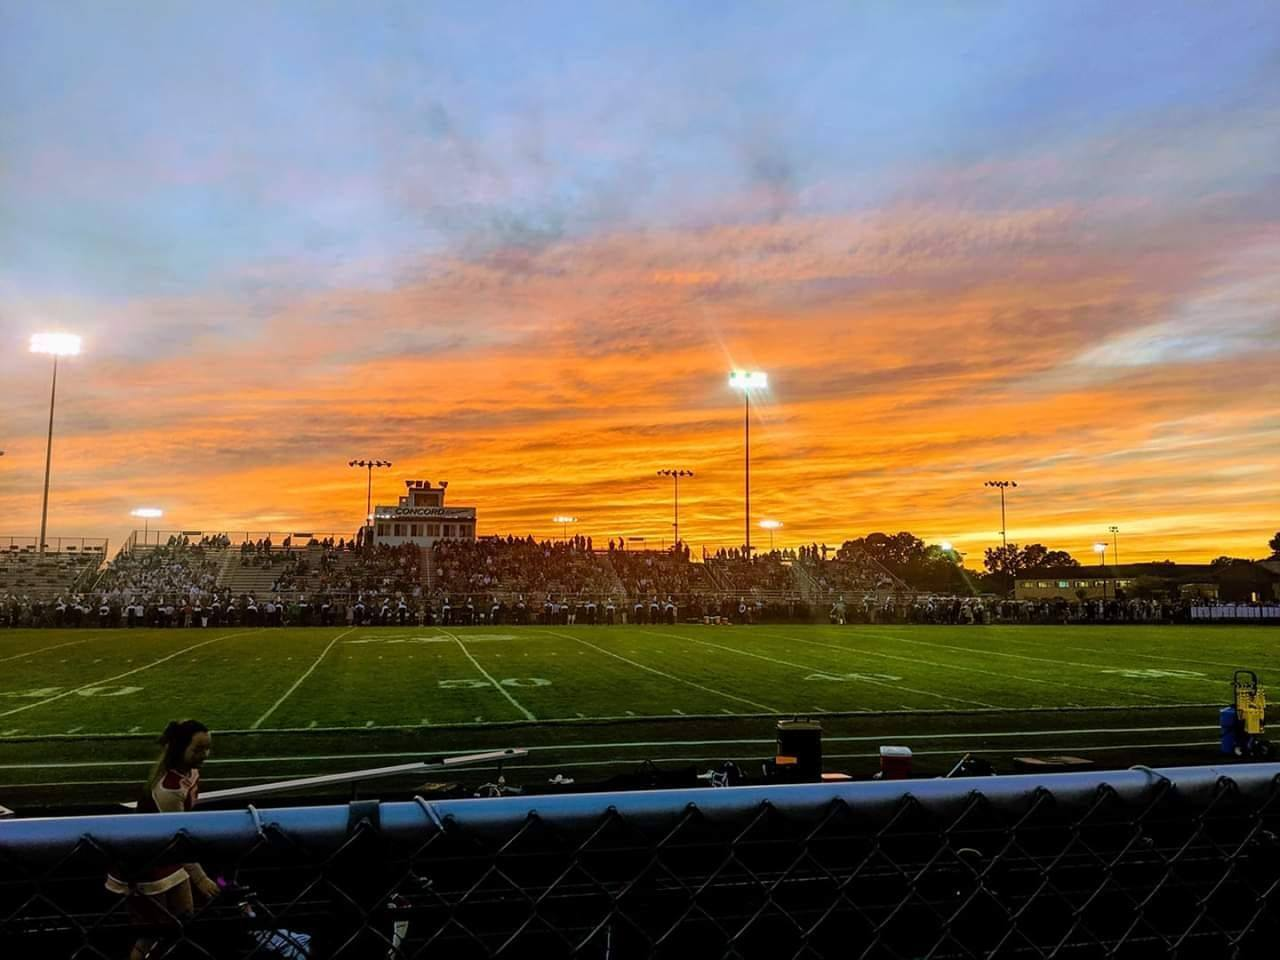 A sunrise over an athletic field